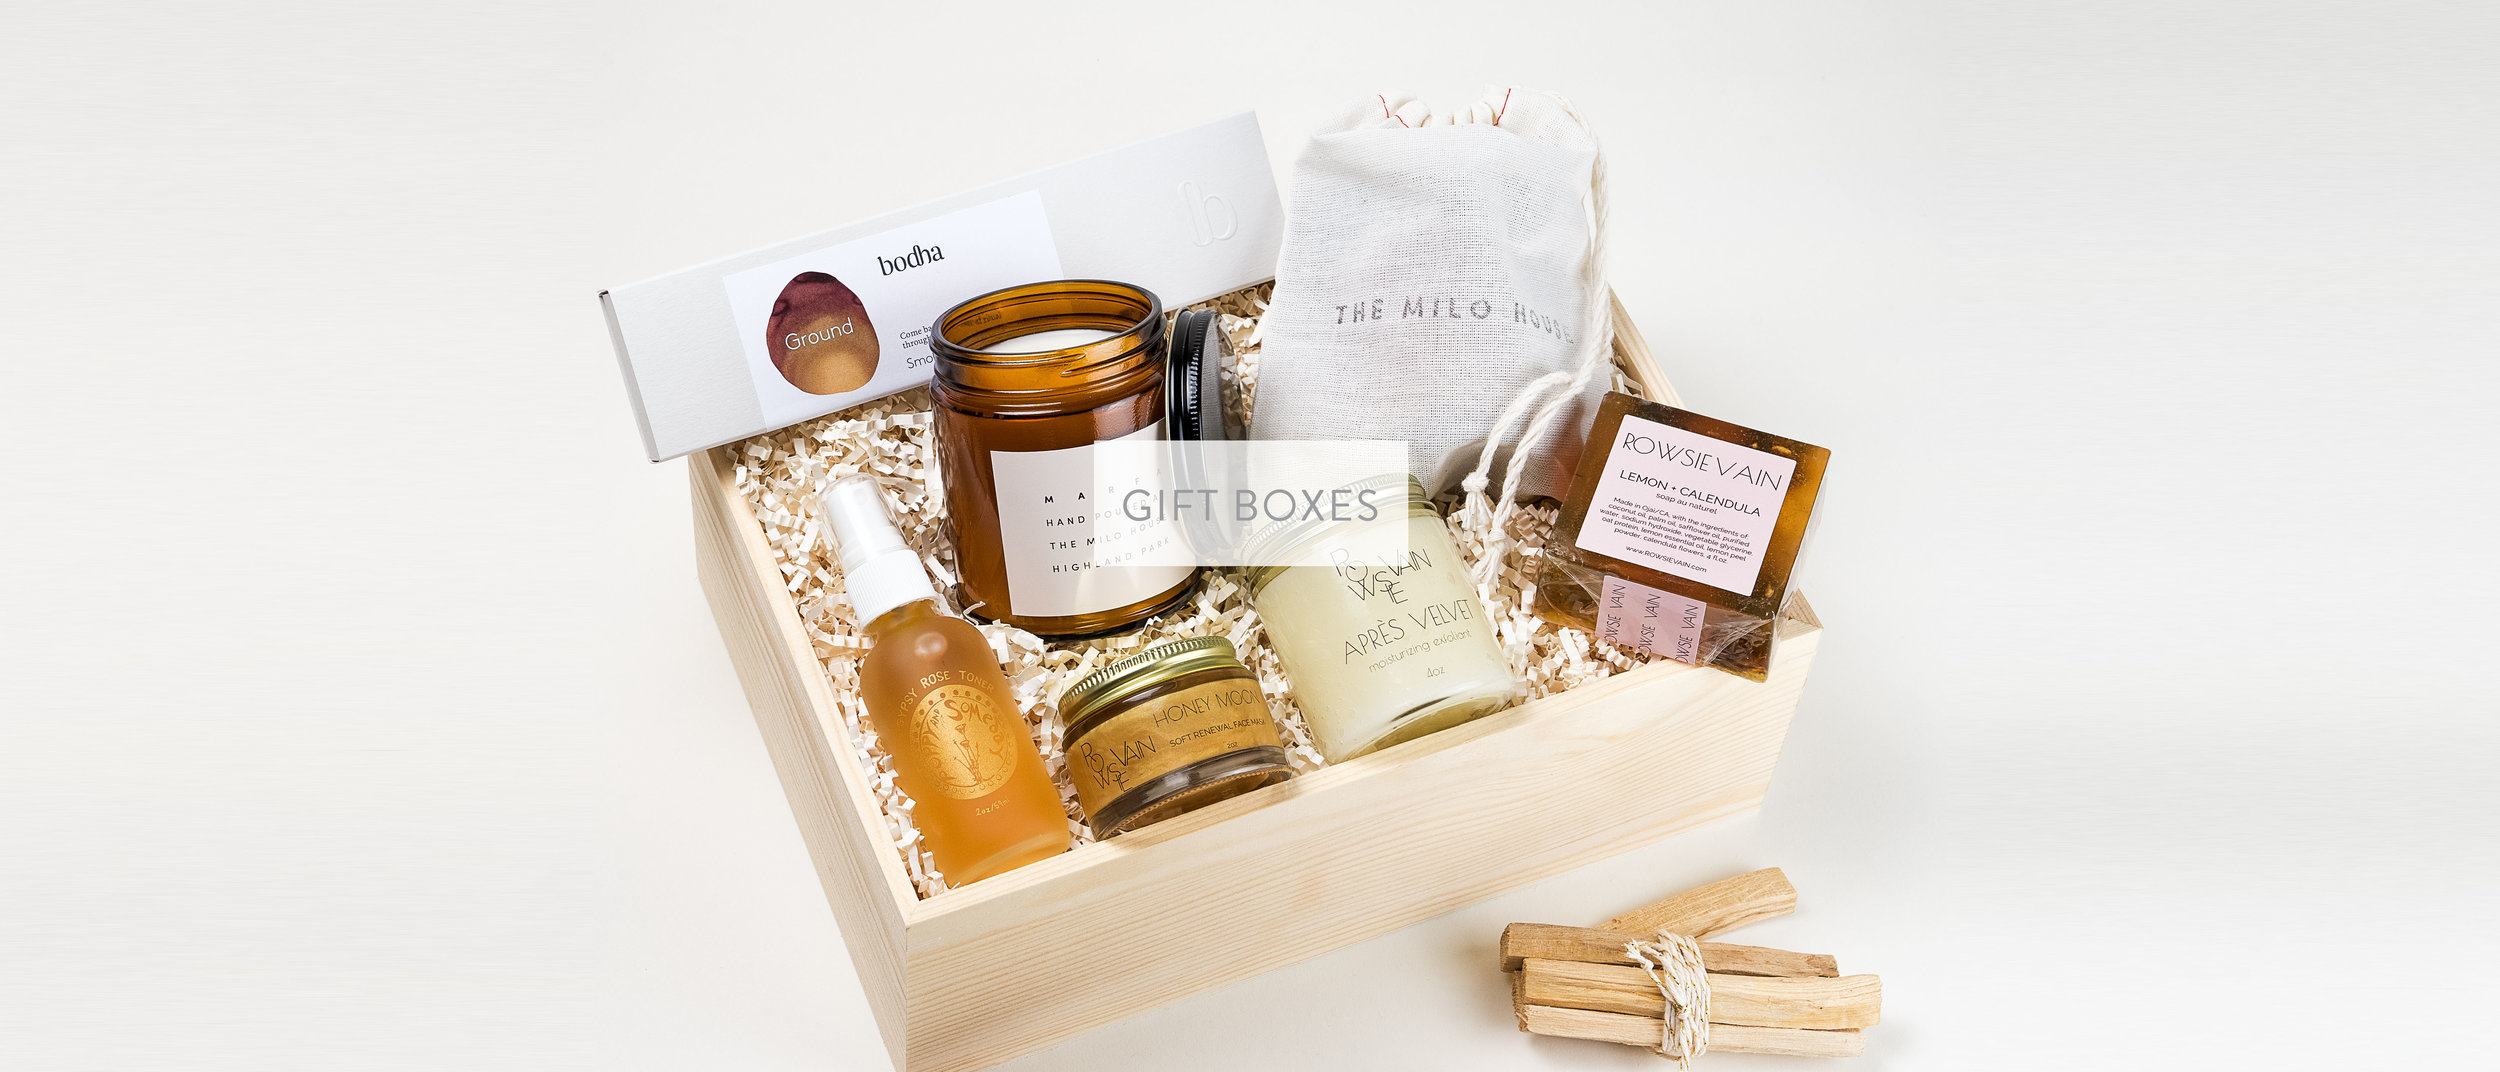 Curated Gift Boxes - Los Angeles - The LA Bliss.jpg